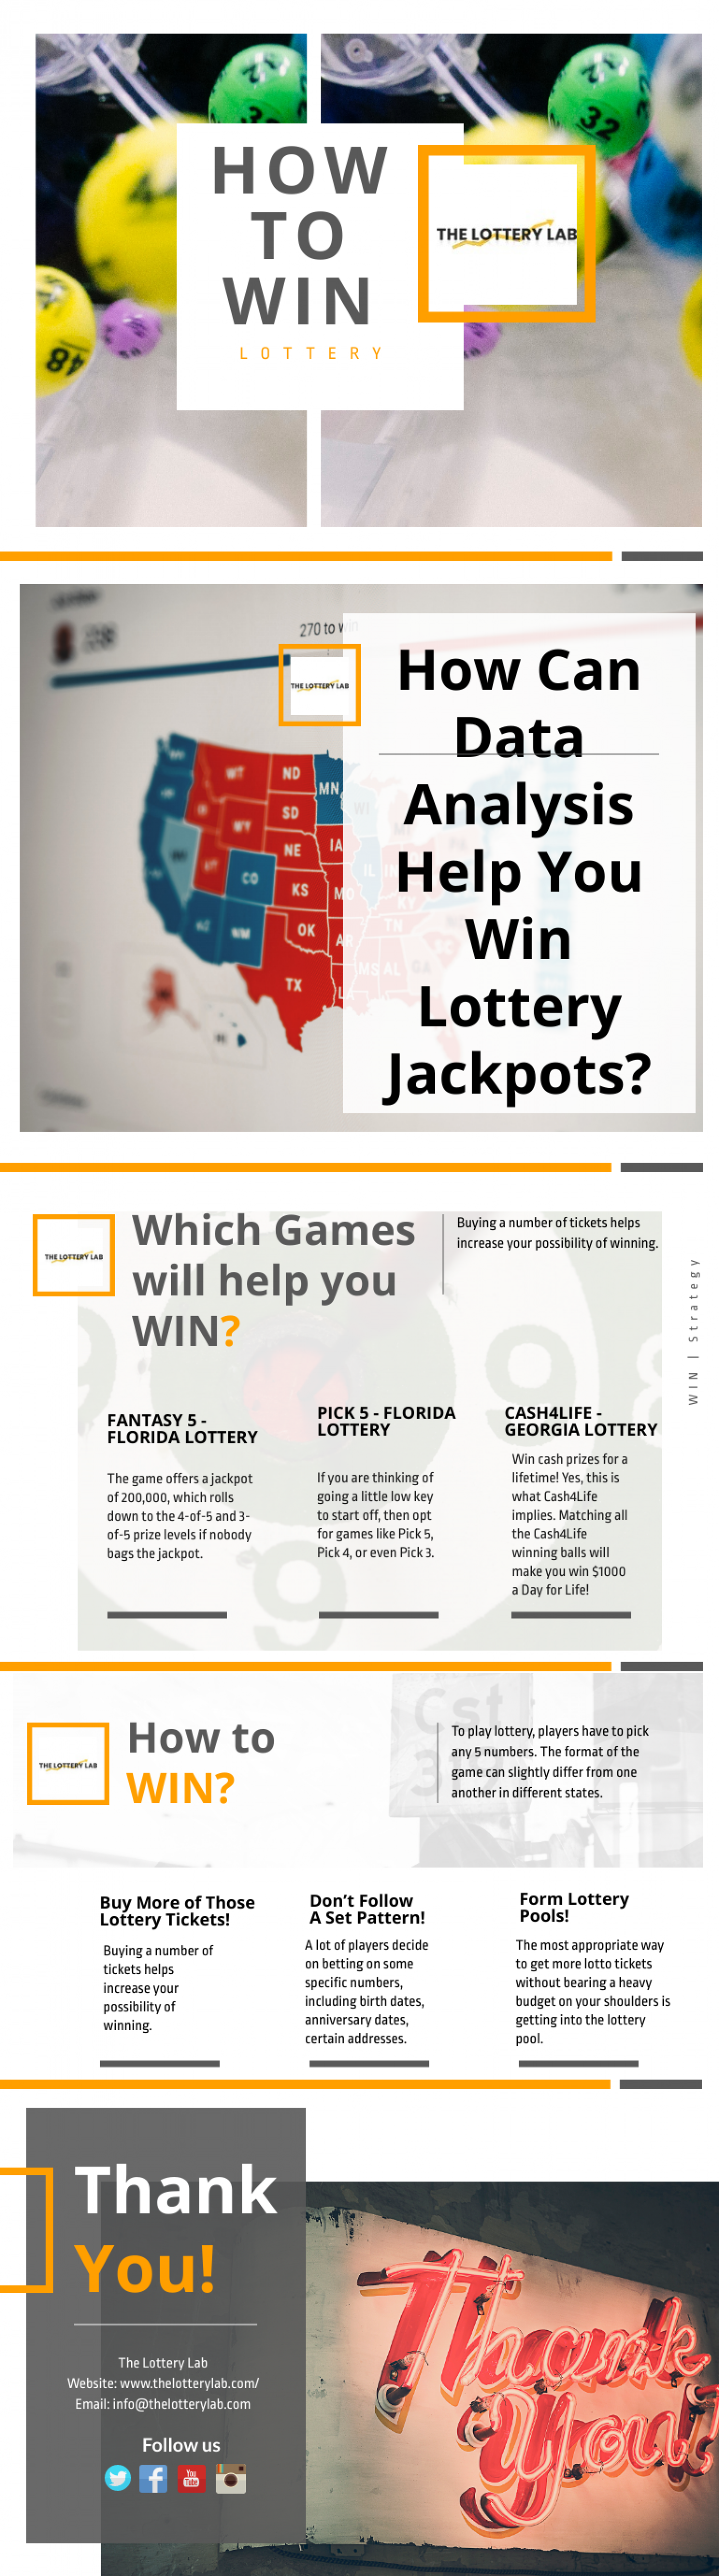 Relevant Information Regarding How To Play and Analysis Lottery USA Infographic